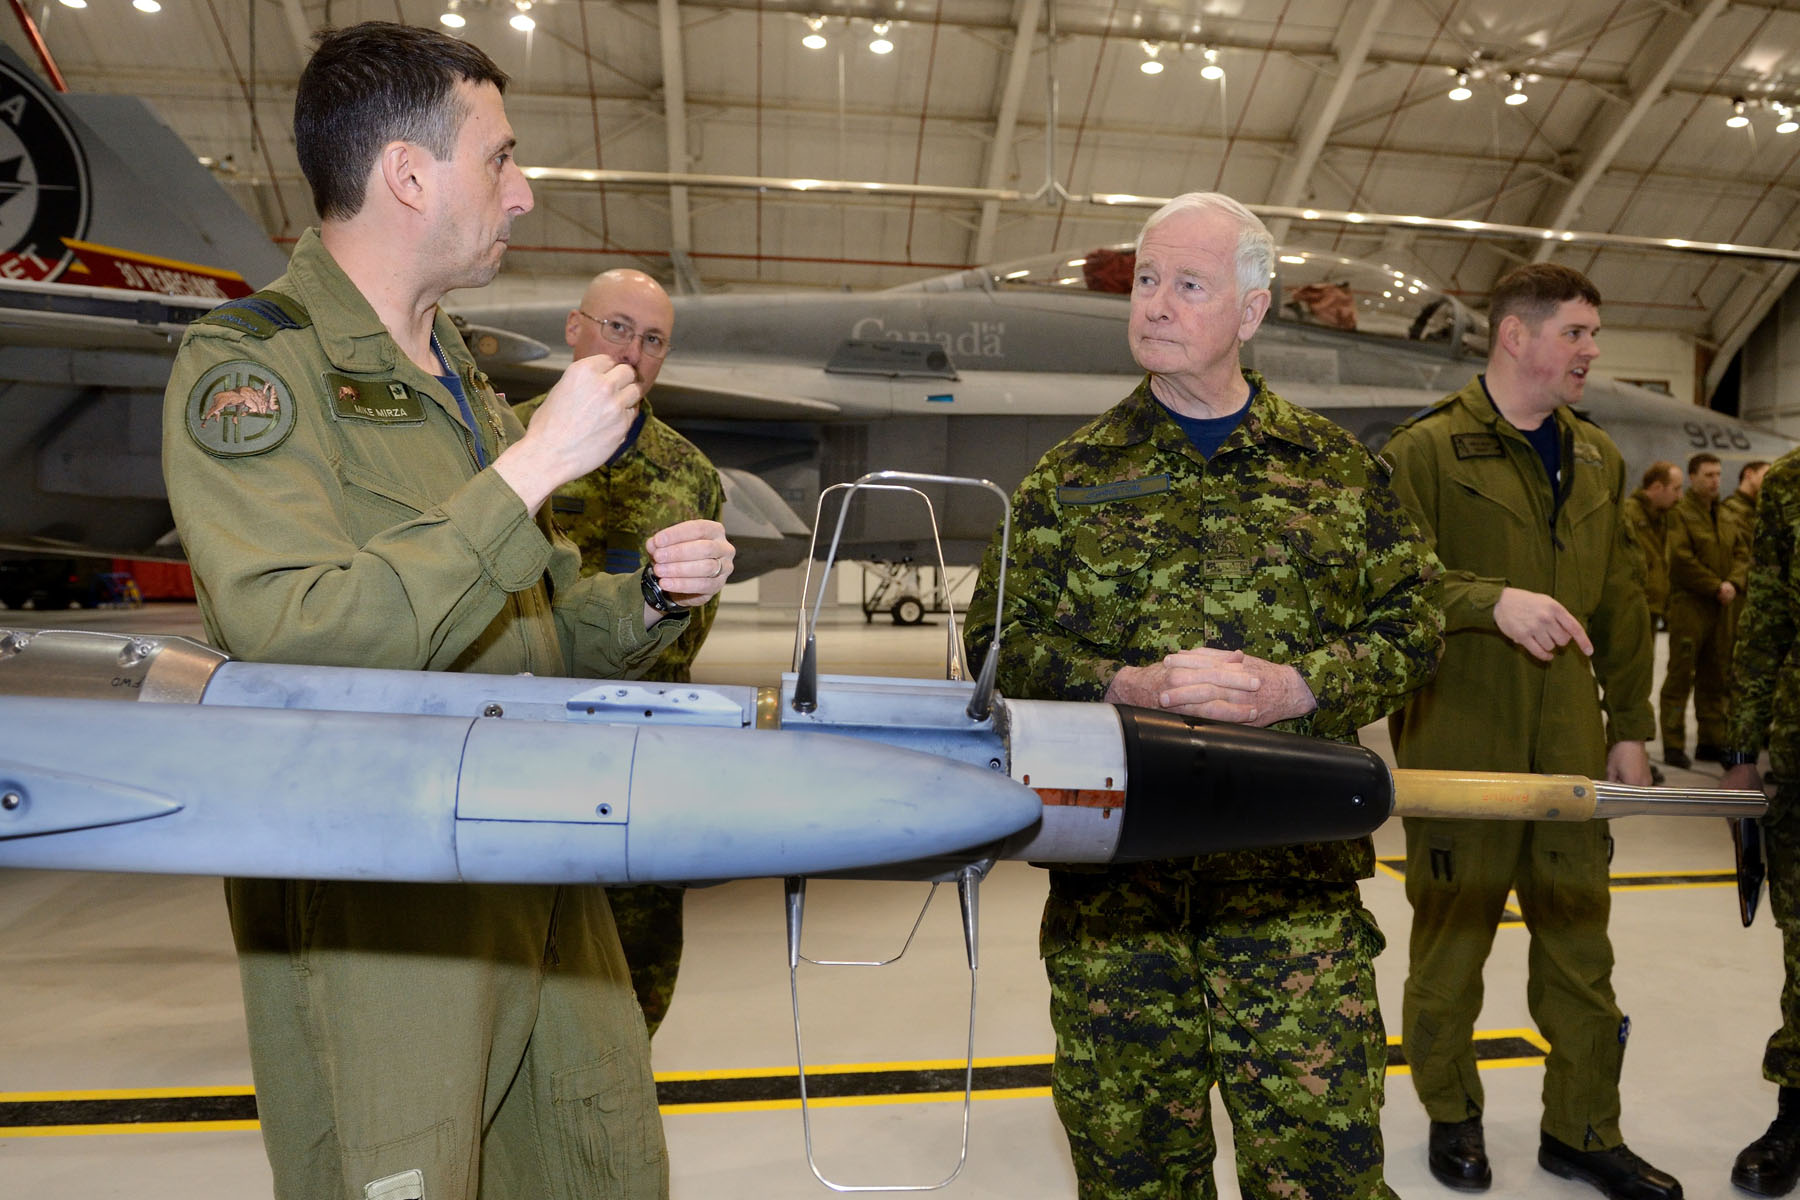 The Governor General then toured the 409 Tactical Fighter Squadron's hangar and viewed various static displays. He first met with Canadian Armed Forces members of the 419 Training Squadron and viewed the CT-155 Hawk static display. He then proceeded to the 410 Training Squadron display and met with students and viewed the CF-188 Hornet.